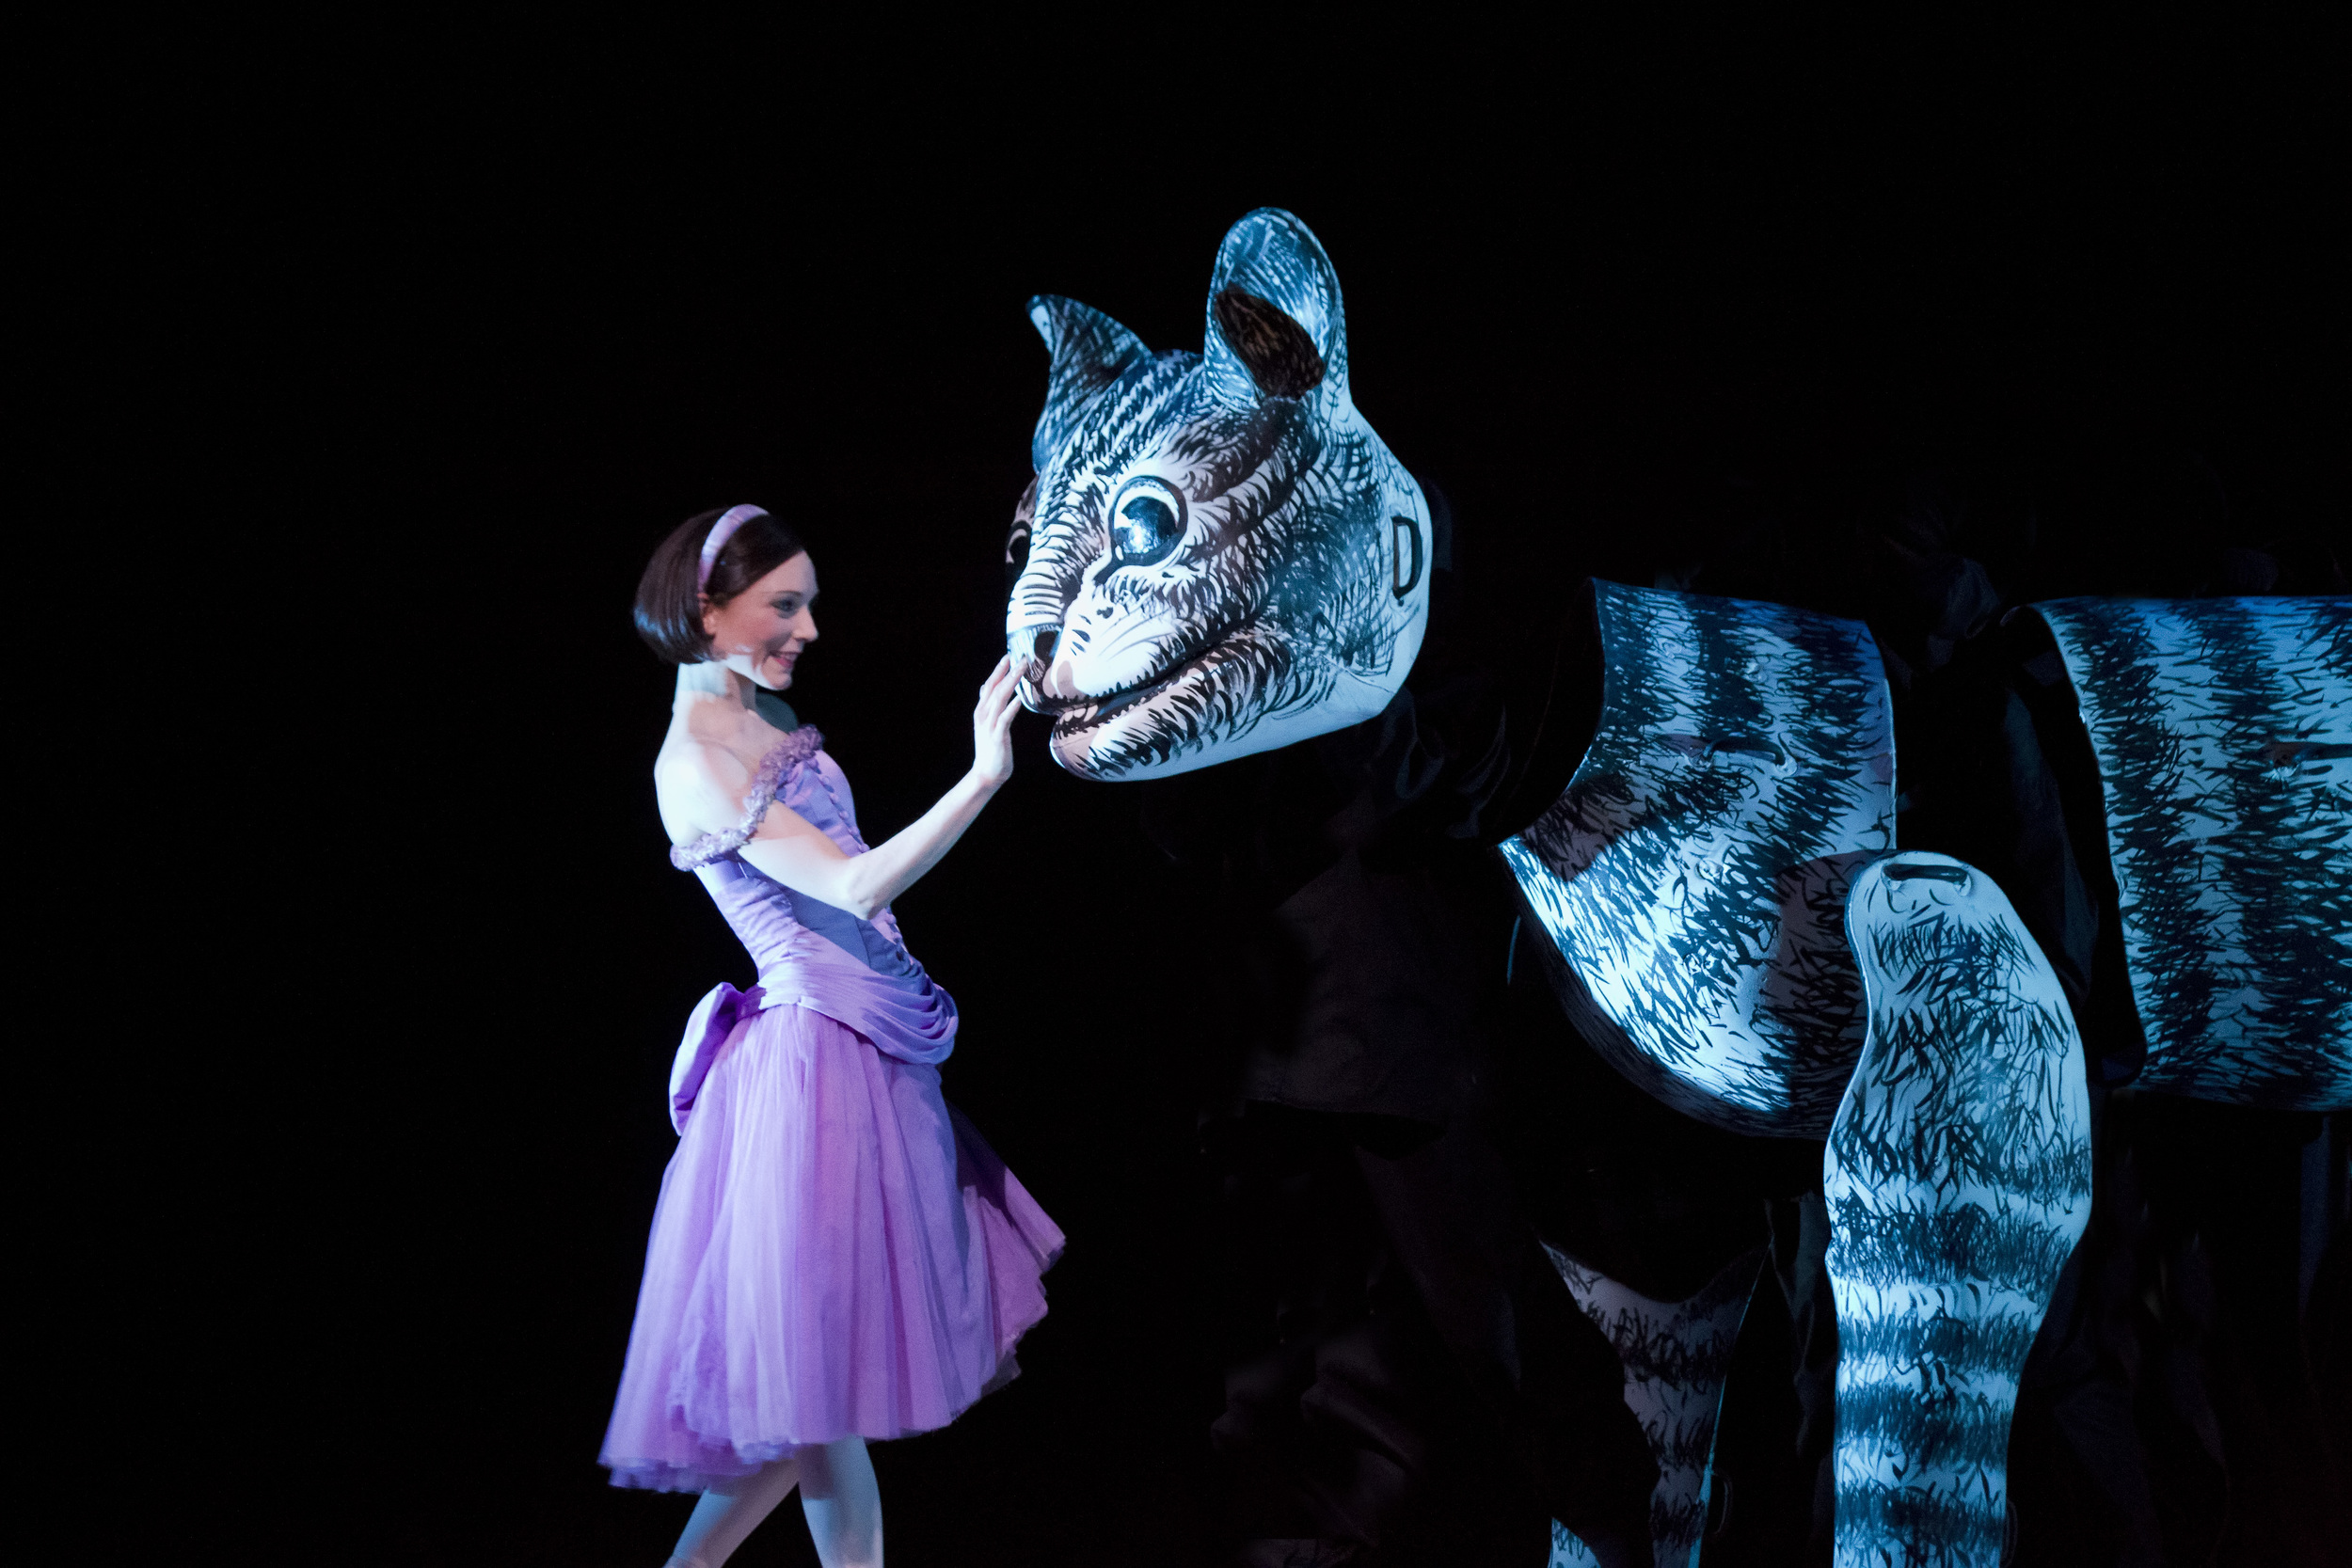 Alice with the Cheshire Cat